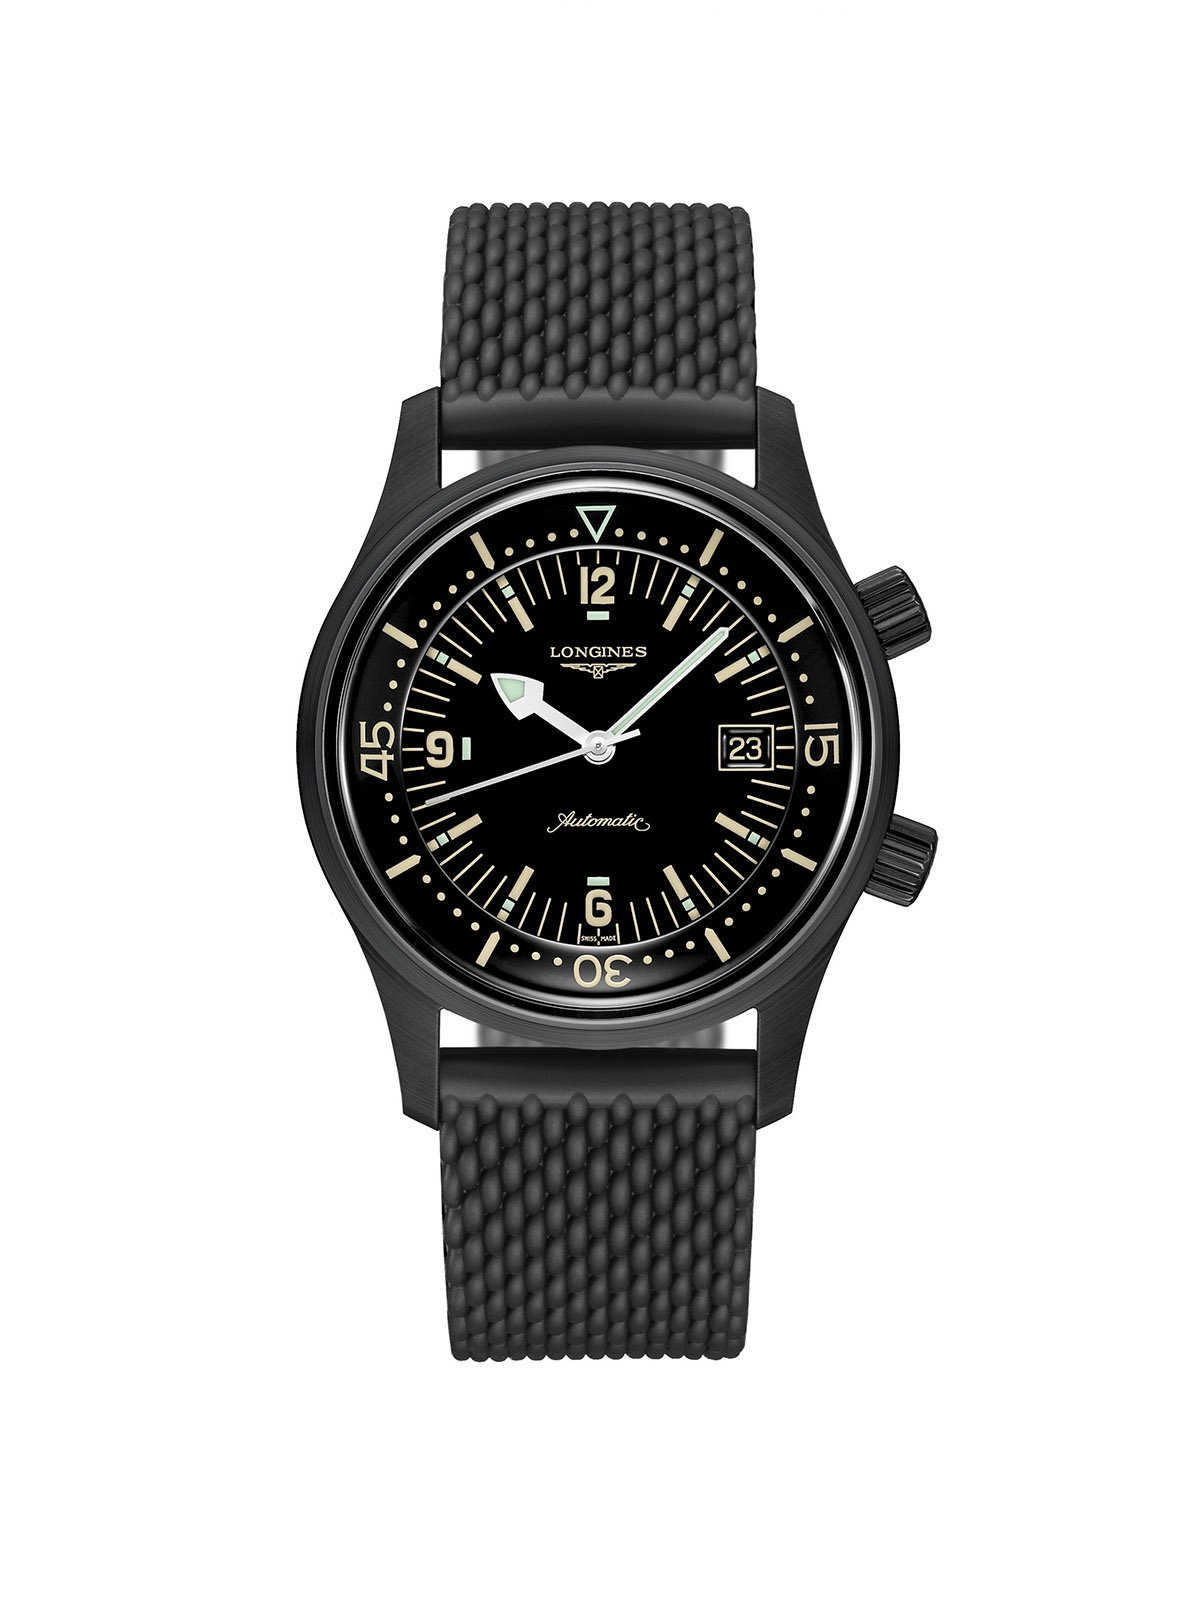 Longines Gents 42mm Legend Diver Black PVD Steel Automatic Chronograph Watch on Rubber Strap L3.774.2.50.9